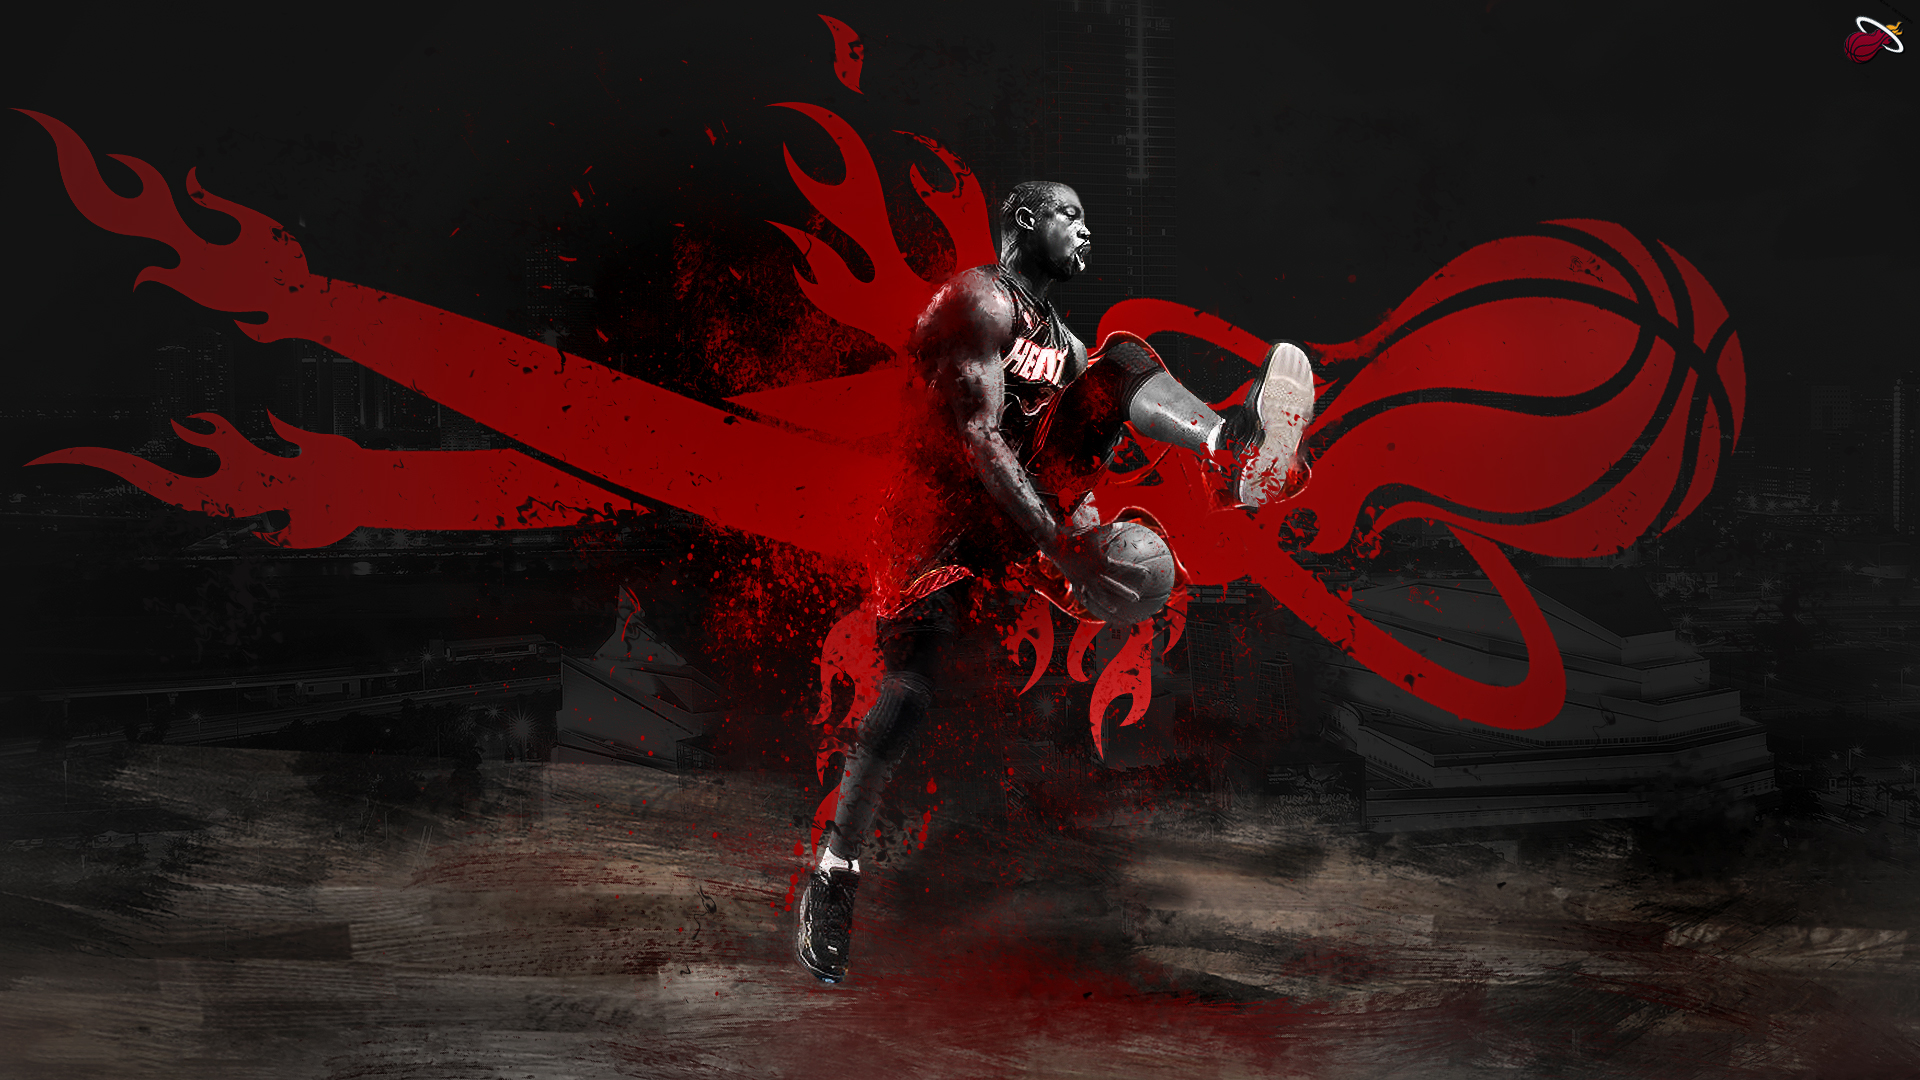 Miami Heat HD Wallpaper | Background Image | 1920x1080 | ID:512050 - Wallpaper Abyss